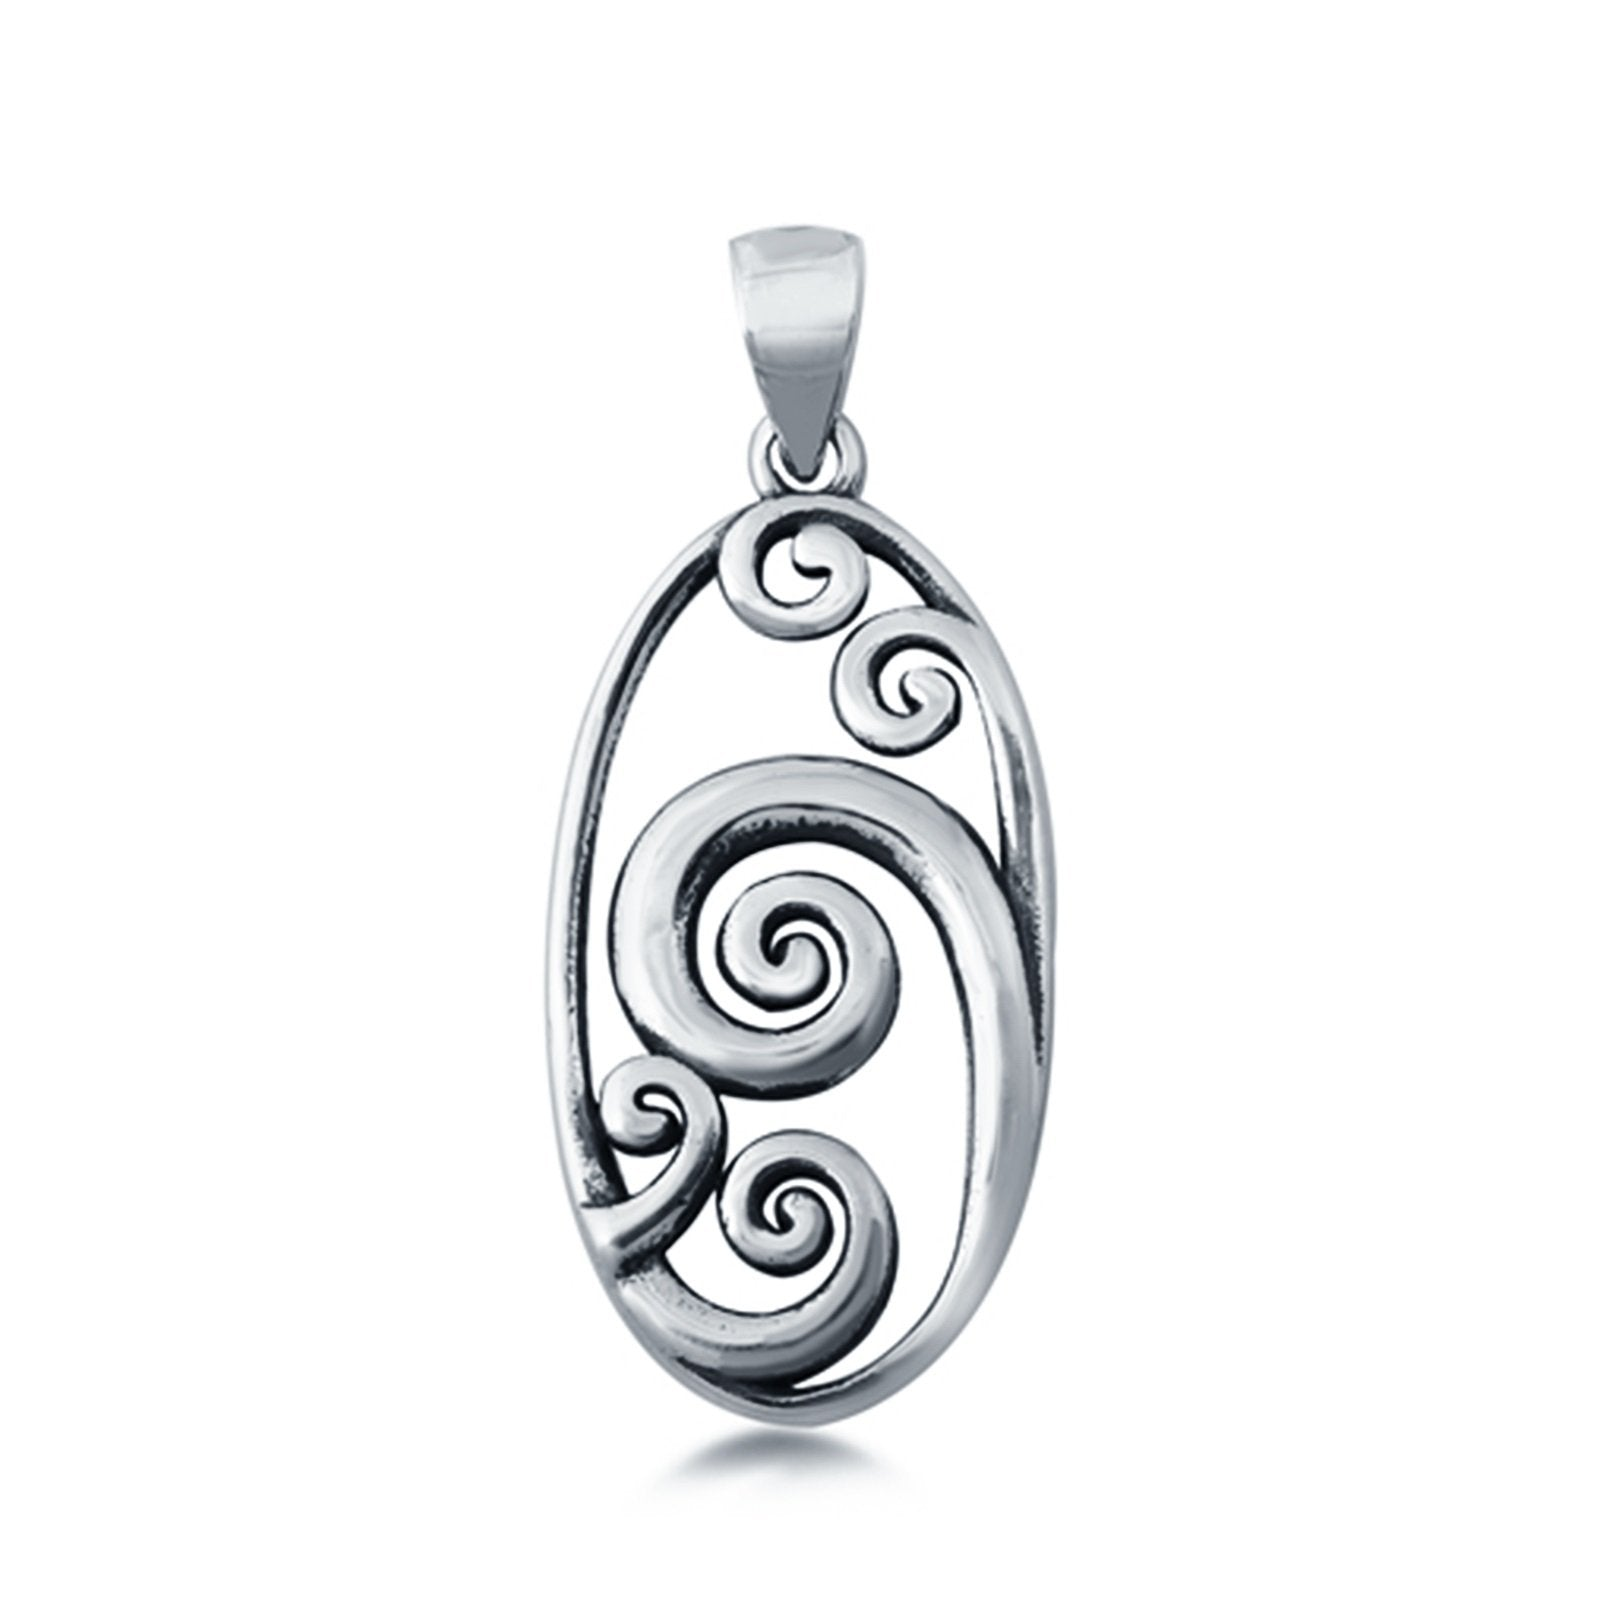 Silver Waves Pendant Charm 925 Sterling Silver Fashion Jewelry (23mm)